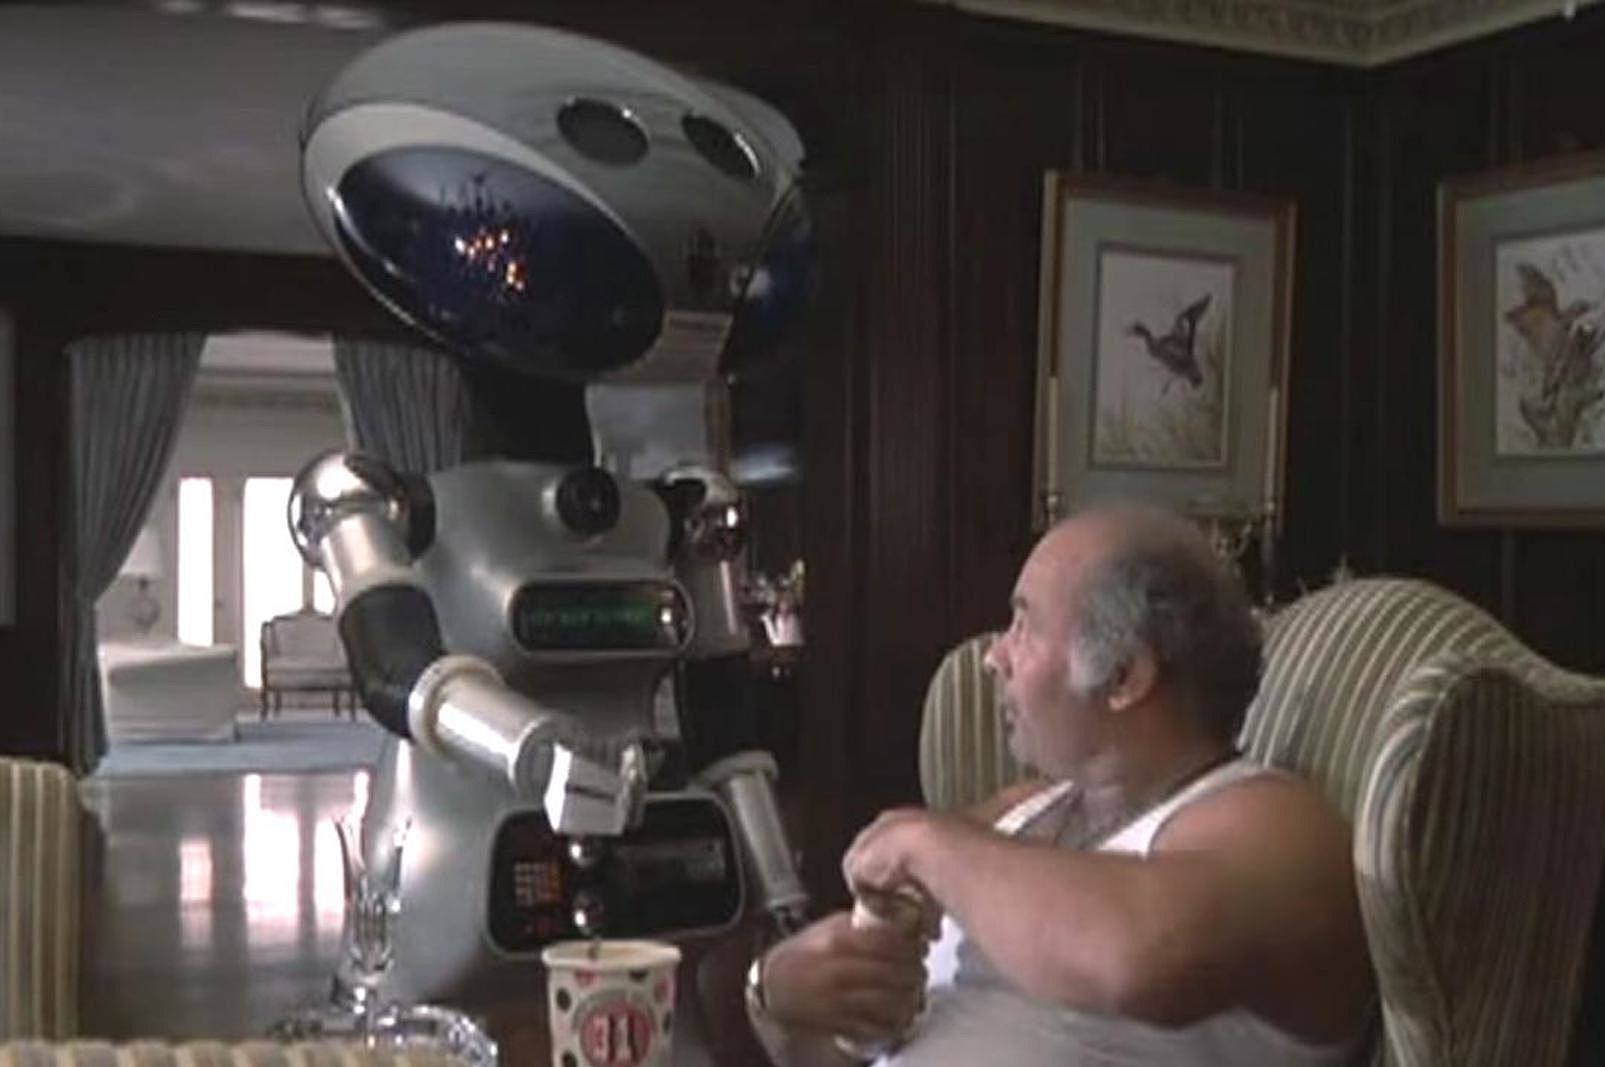 https://townsquare.media/site/442/files/2020/08/rocky-robot.jpg